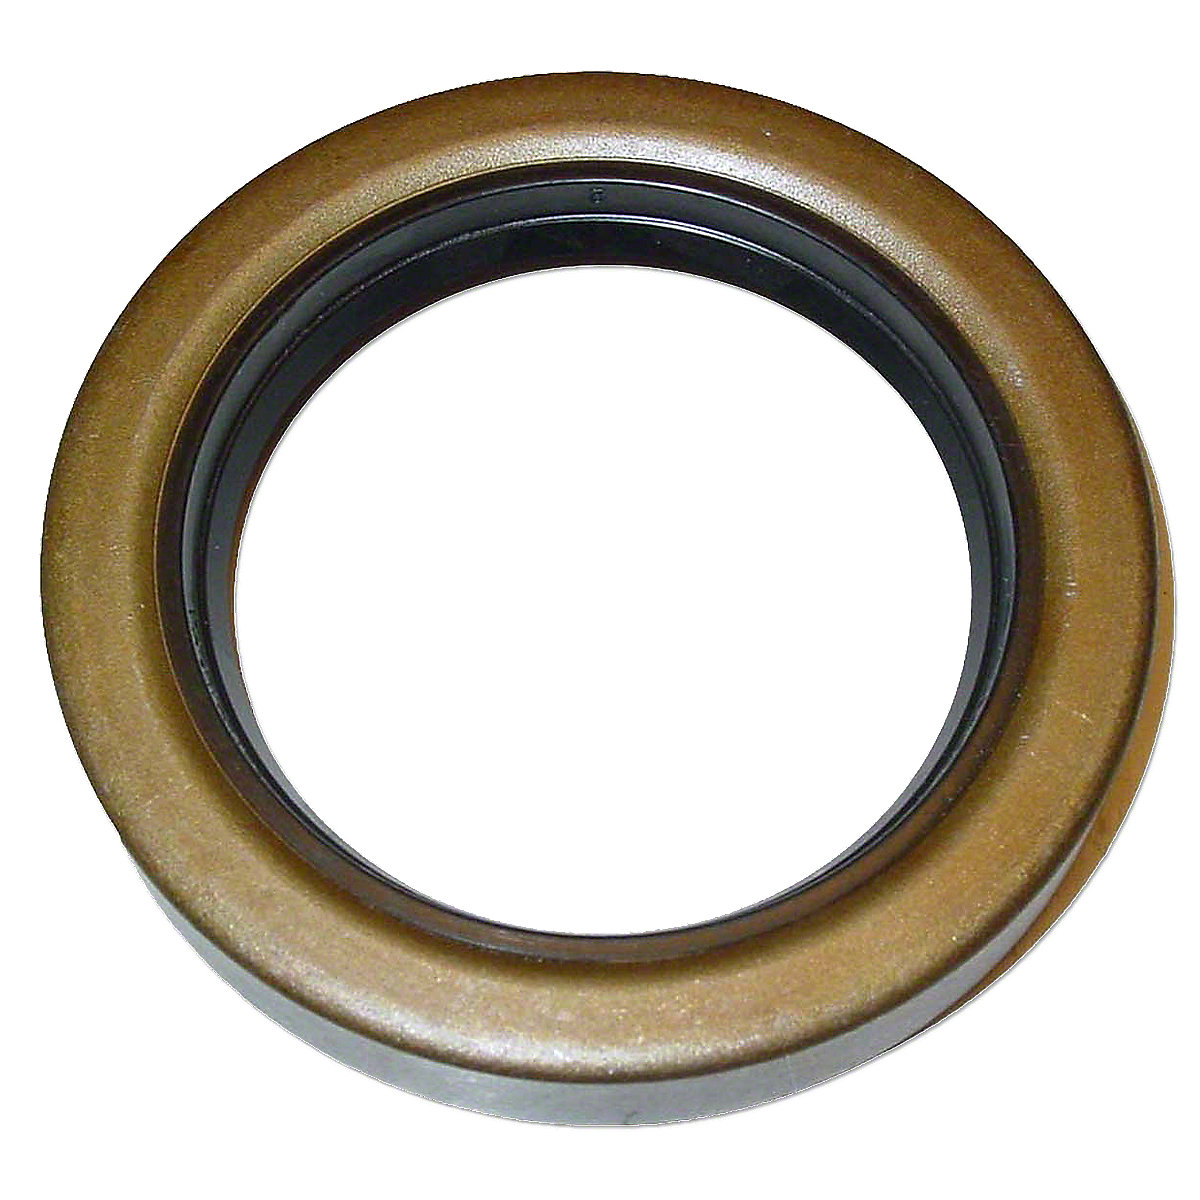 Rear inner axle oil seal for massey ferguson tea20 85 to30 replaces